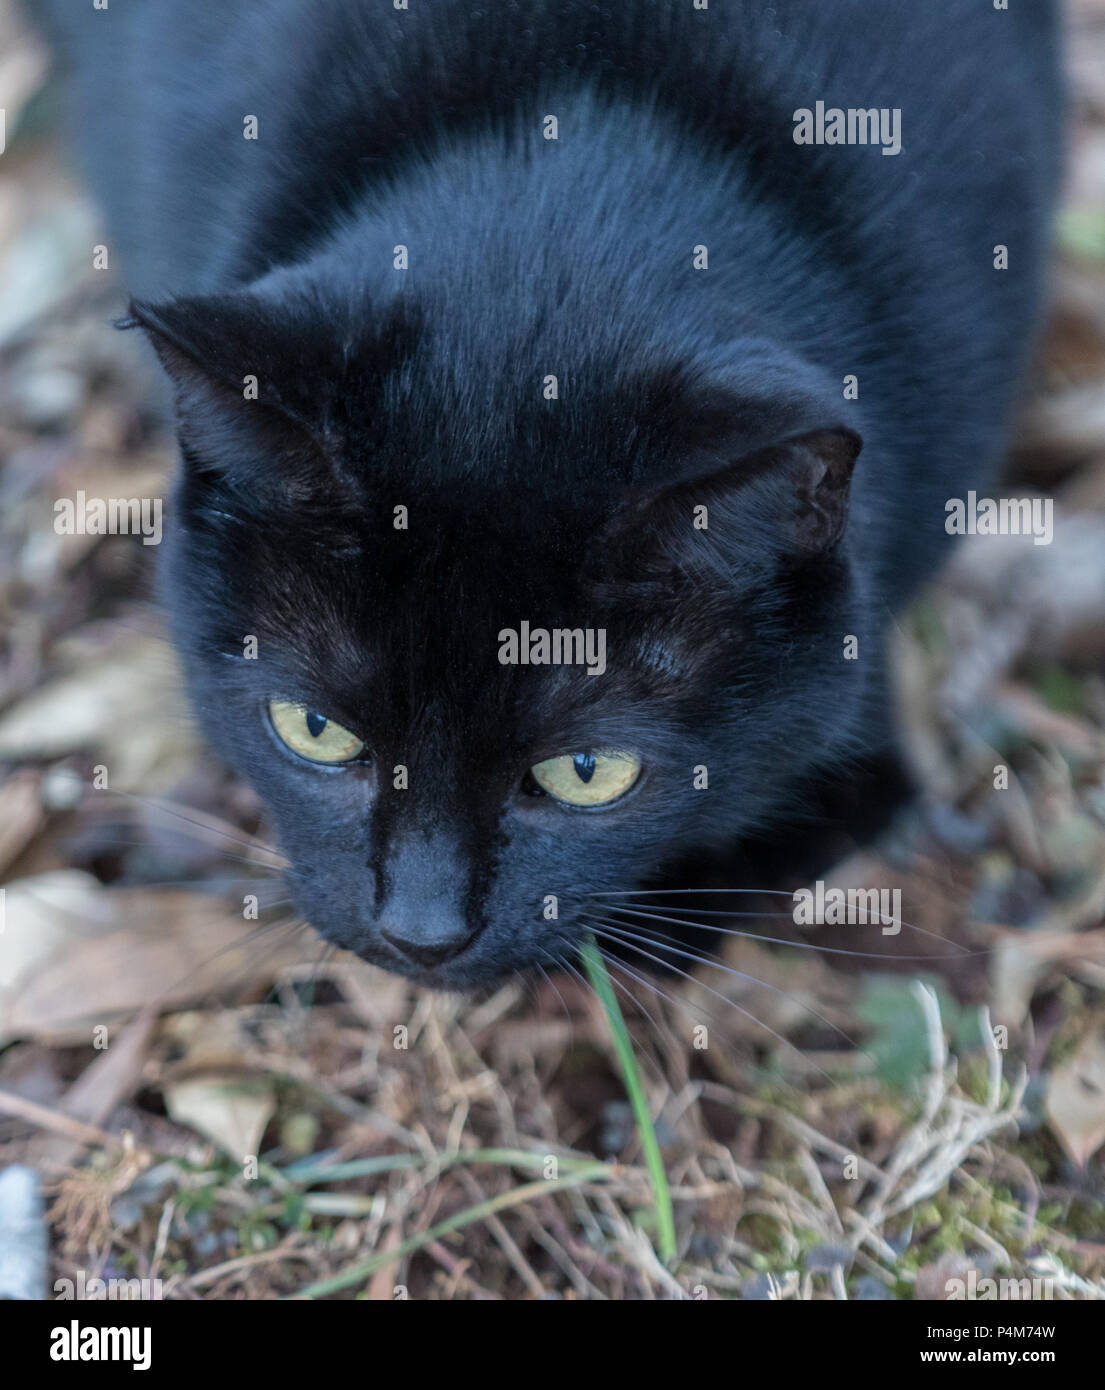 A black cat, focused and ready to pounce, shot from above. - Stock Image